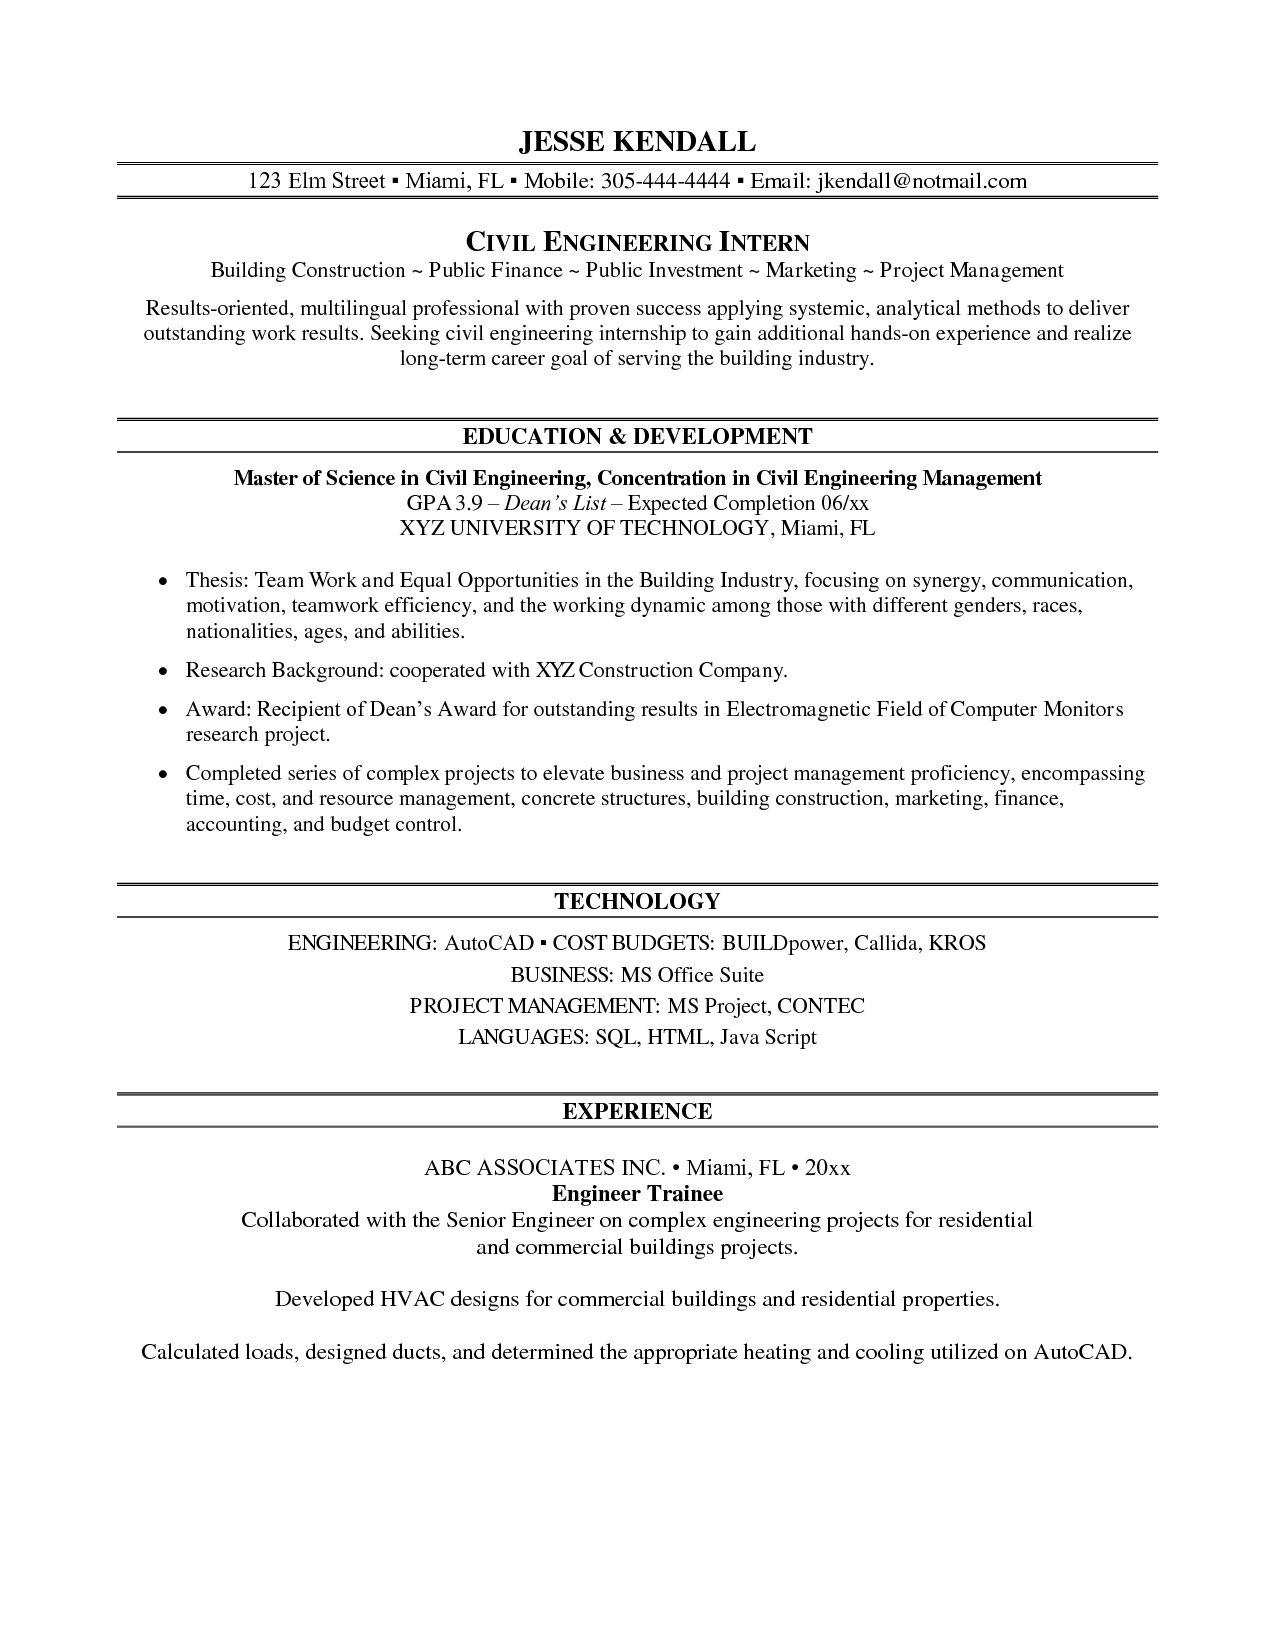 Internship Engineering Resume